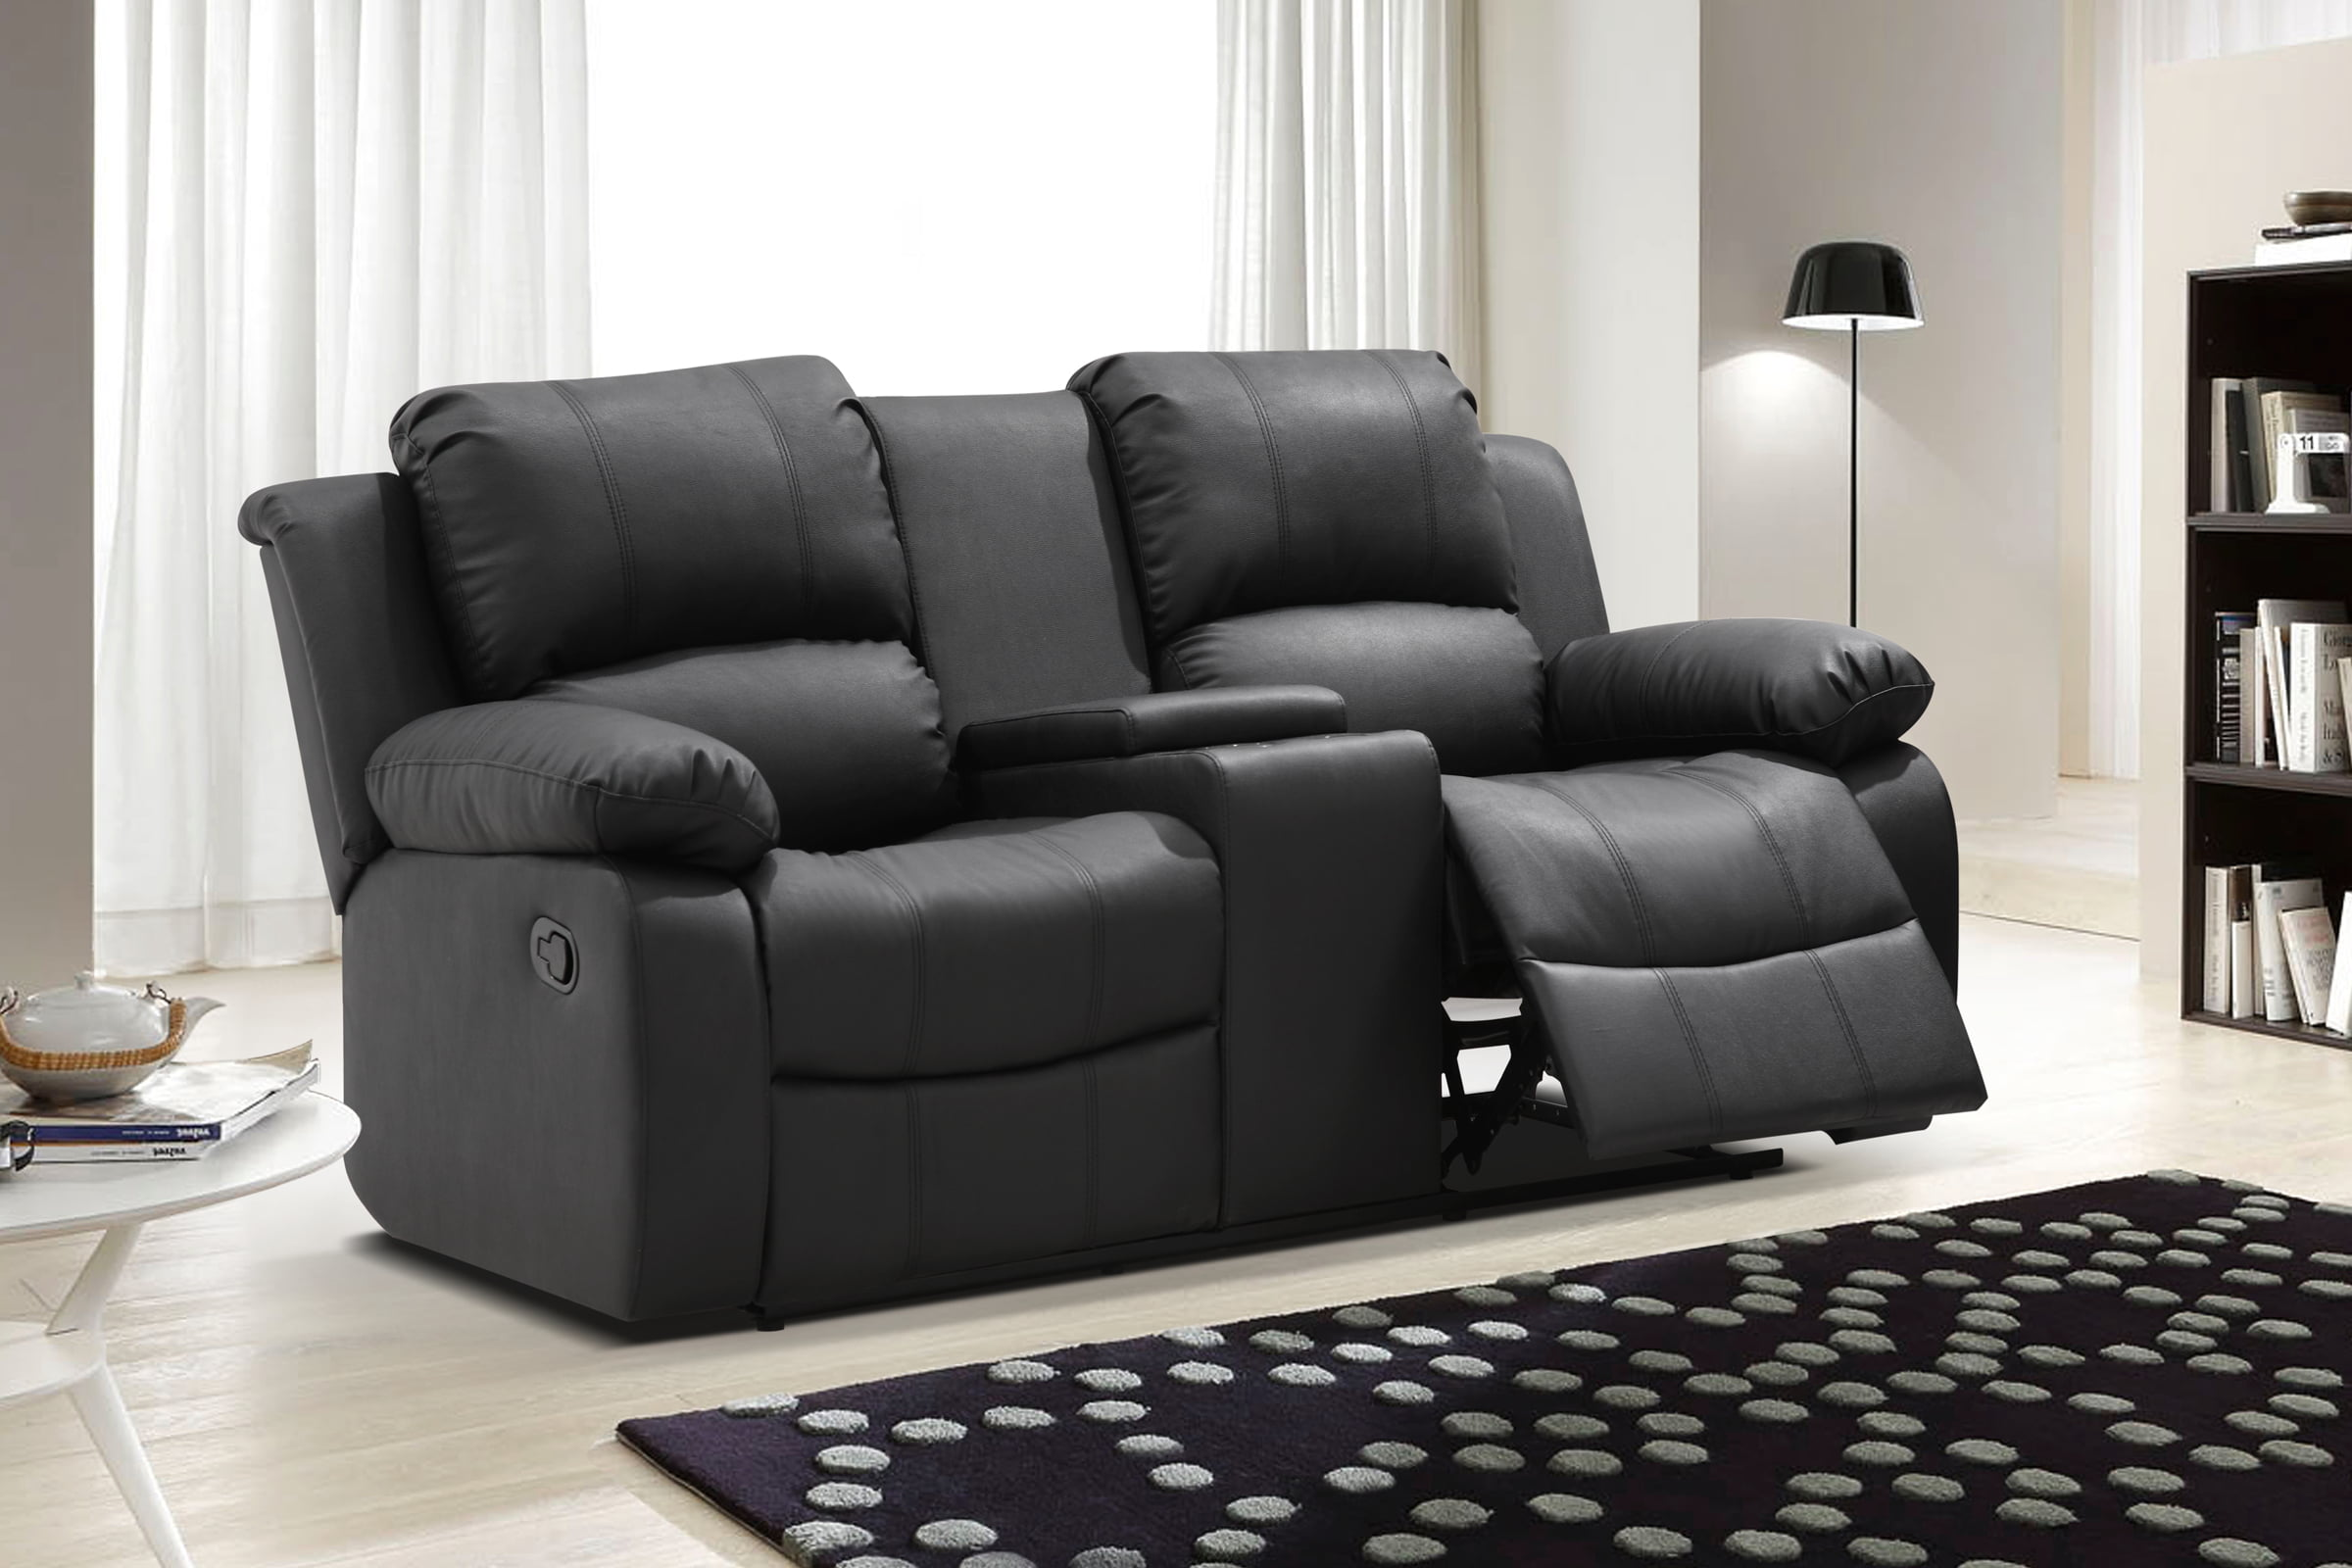 uts a loveseat leather fingerhut full for bennett nivrf to image over hover design mcleland reclining zoom scl product click look power